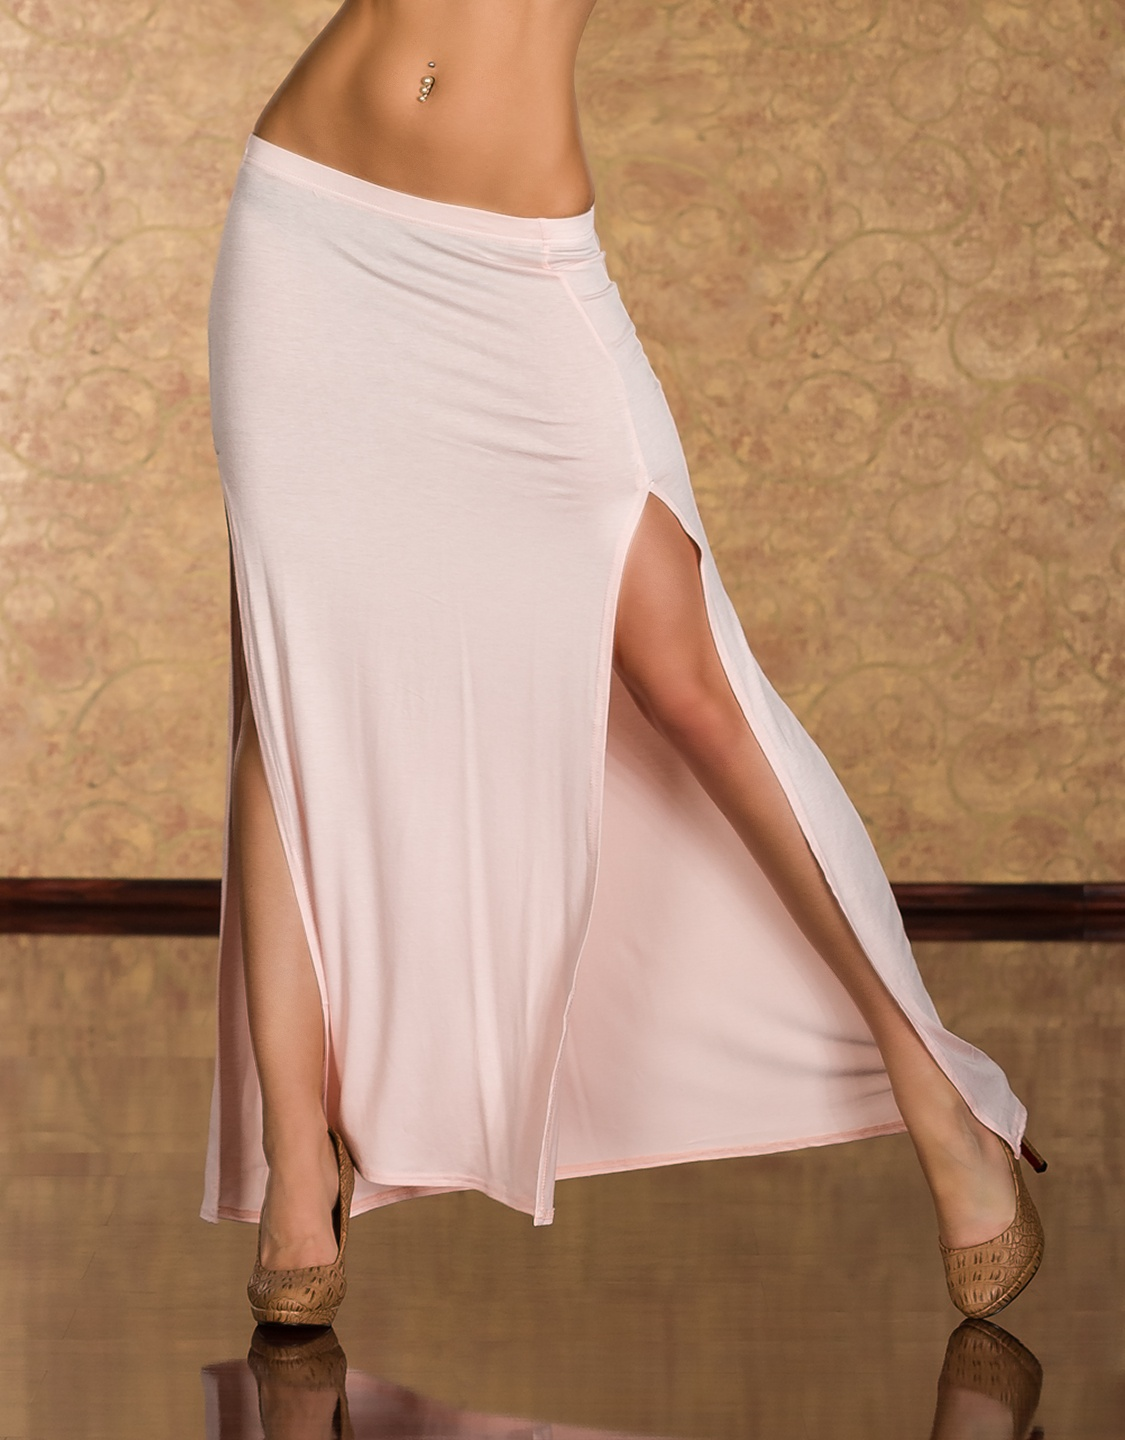 Rose Long Skirt With Vertical Cuts